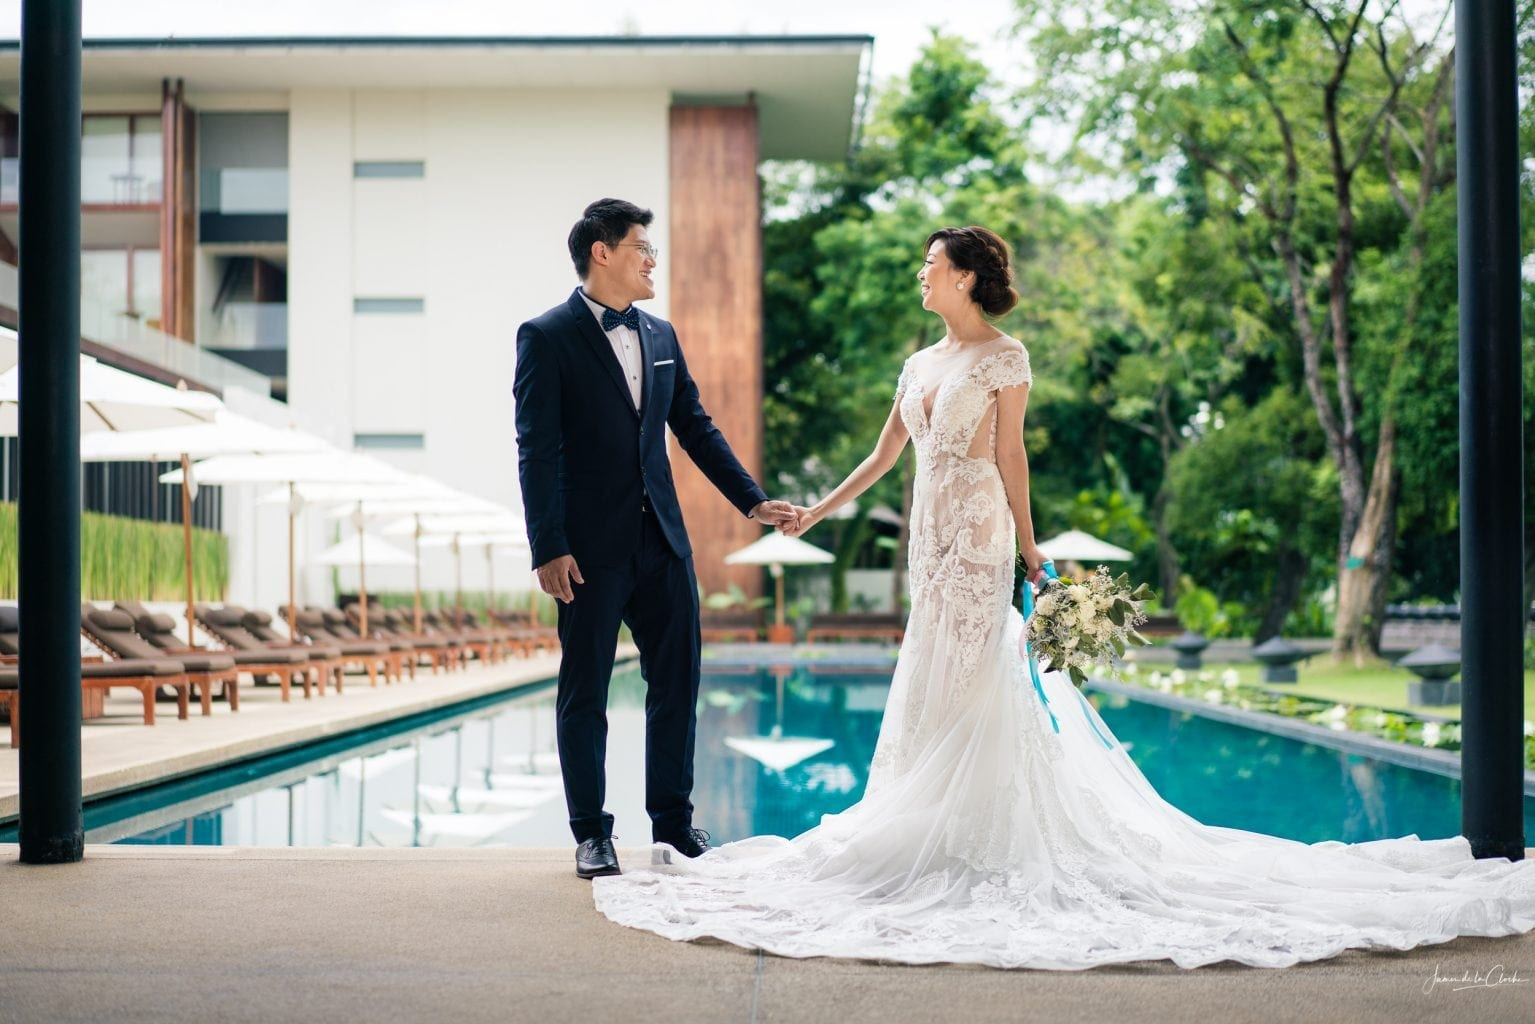 Anantara Chiang Mai pre wedding photo shoot